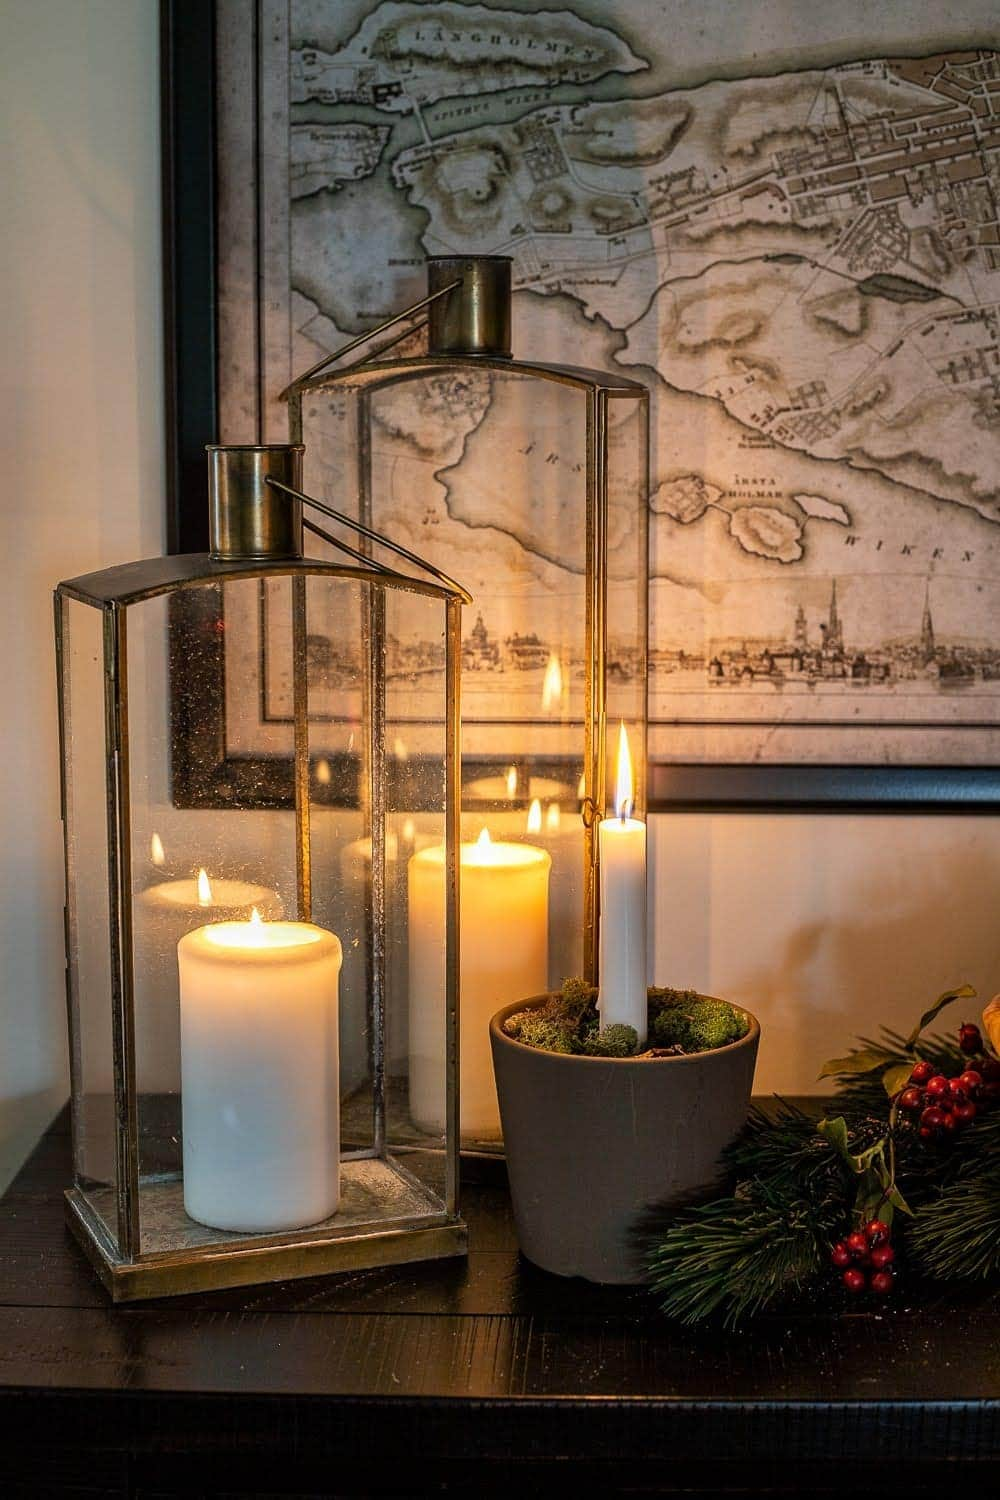 Add lanterns and candlelight to your Christmas decor to create hygge in your home.